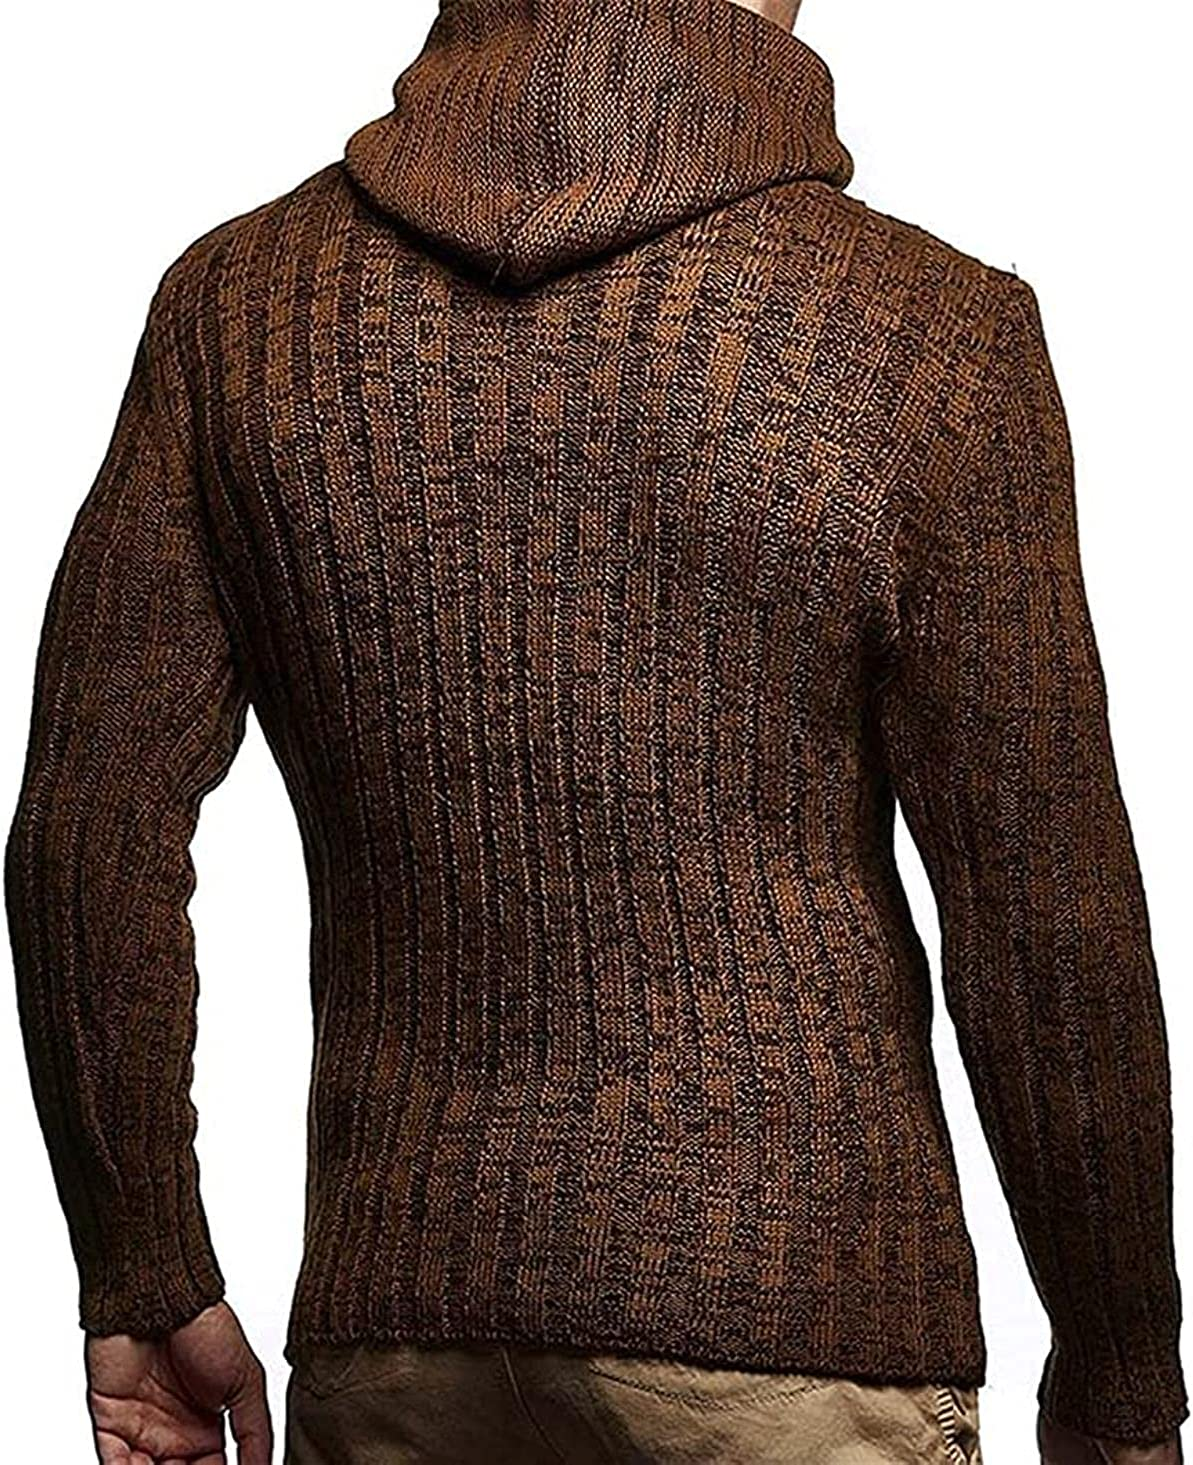 JOAOL Mens Autumn Winter Hooded Sweater Men Warm Slim Fit Knitted Sweater Pullover